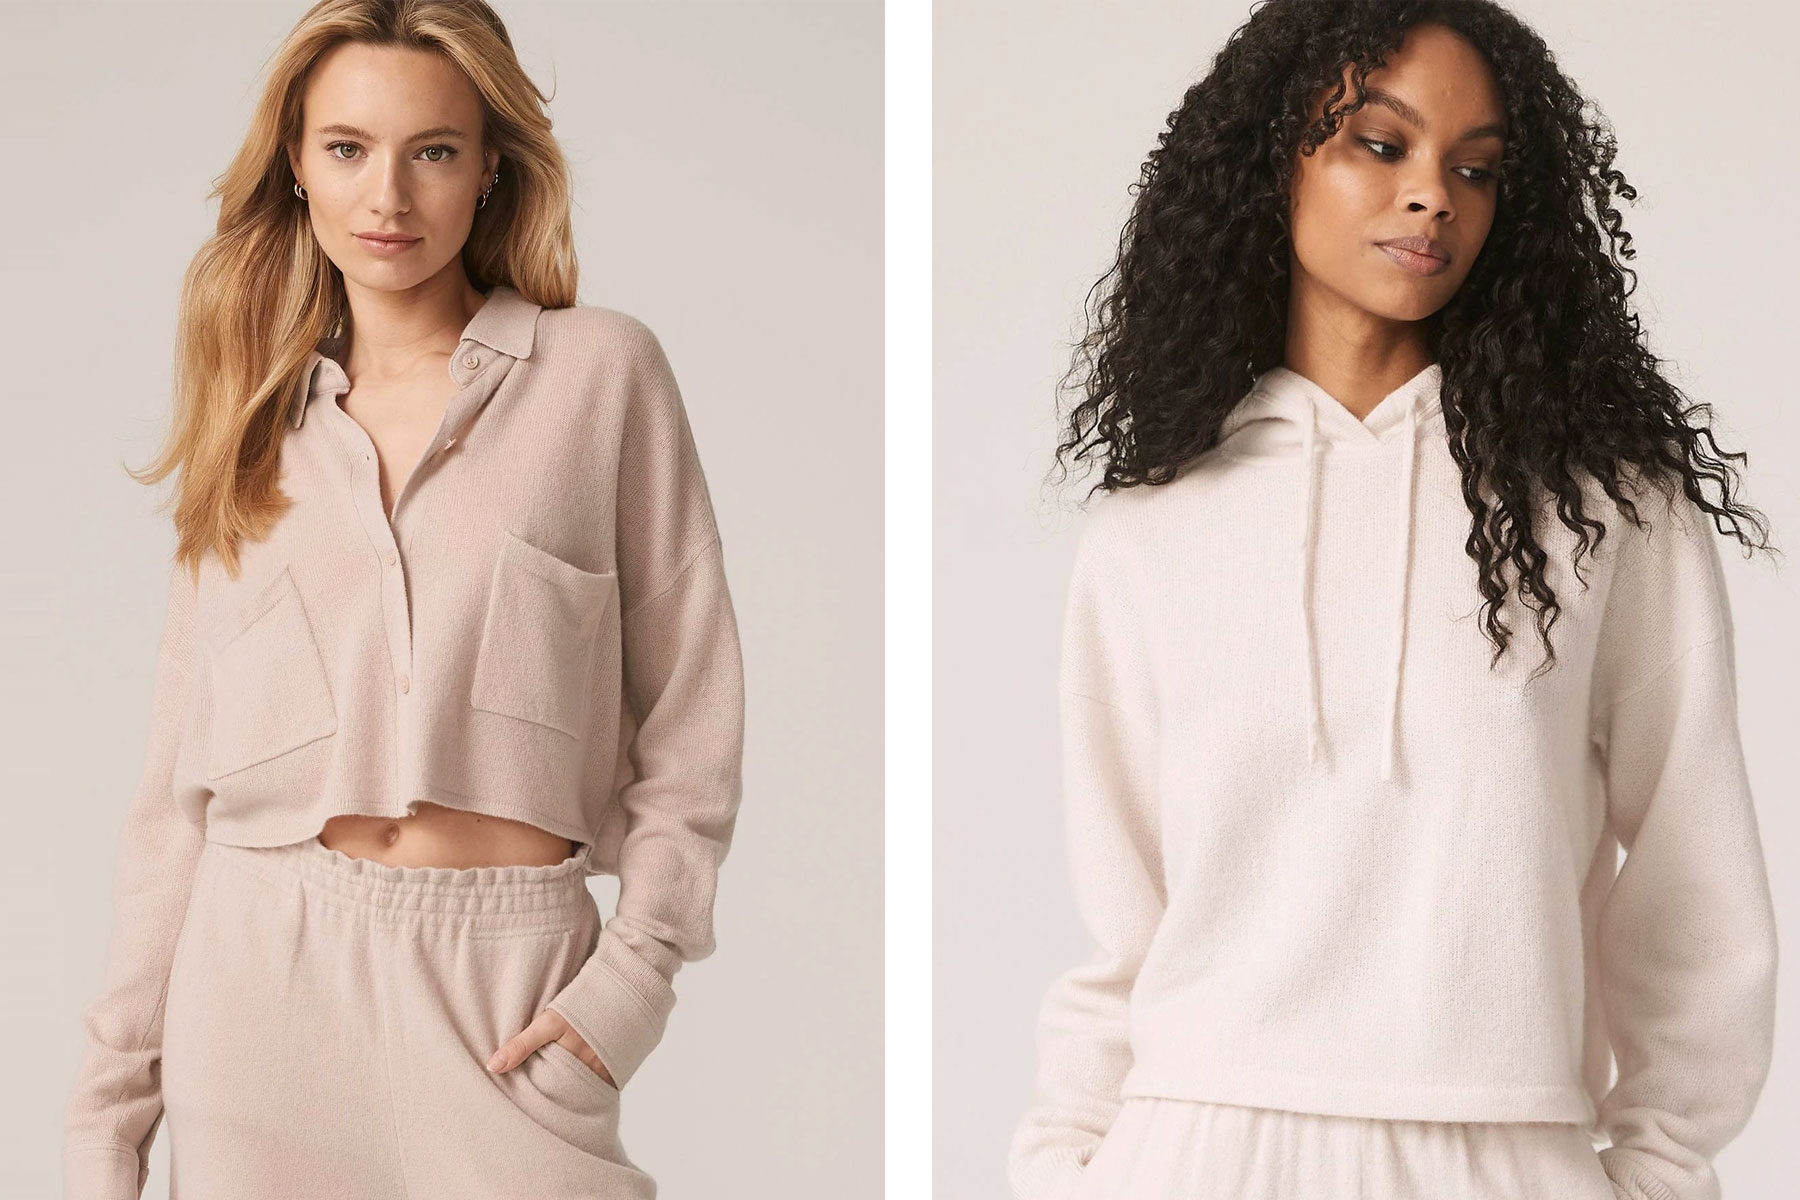 Women wearing pink and cream cashmere loungewear